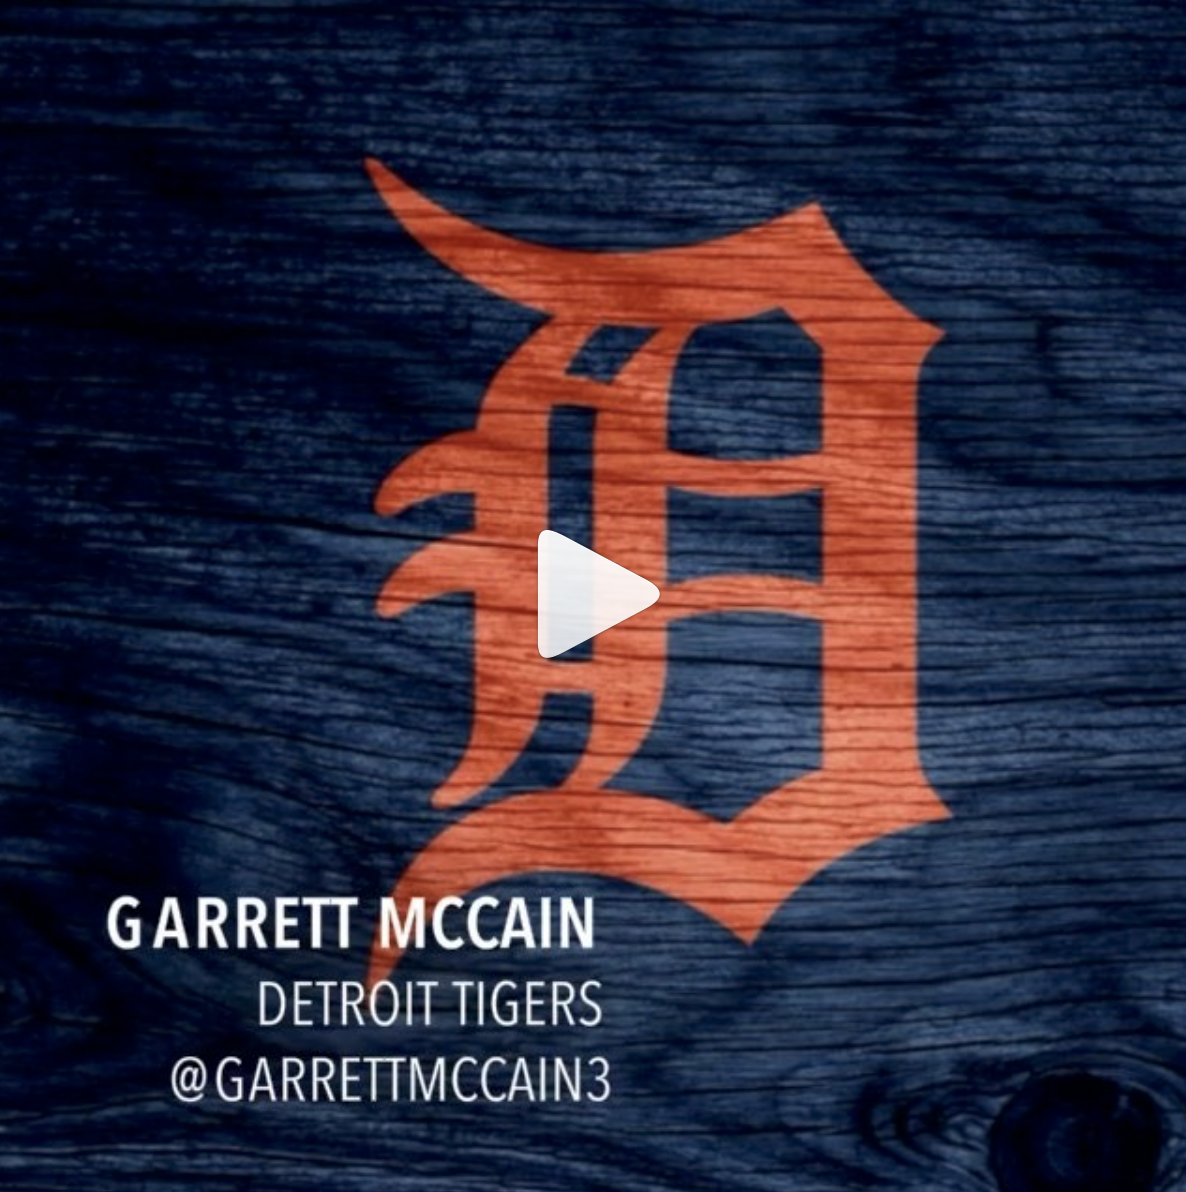 "Garrett McCain   Detroit Tigers - @garrettmccain3""Be intentful in everything you do on and off the field"""